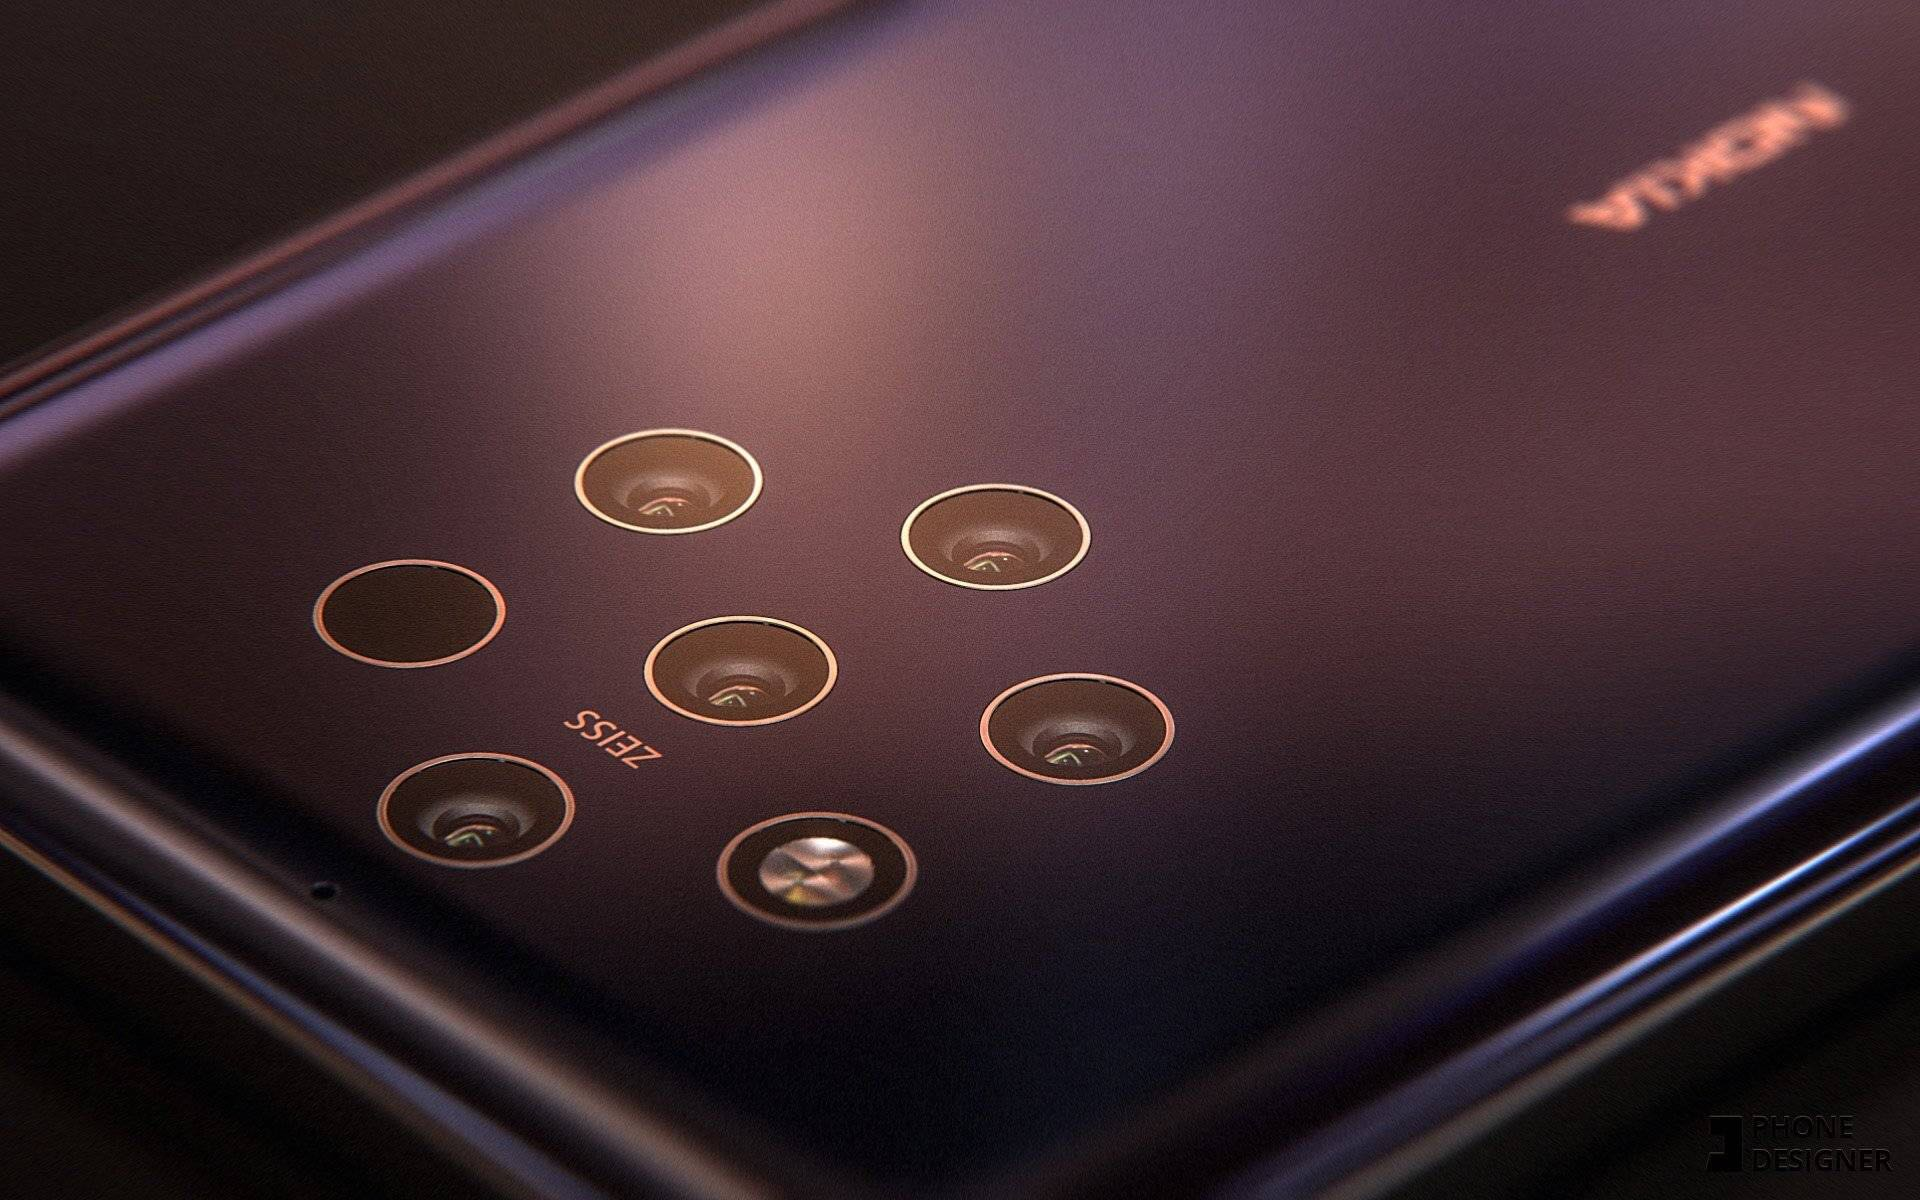 Nokia 9 PureView Images Gallery